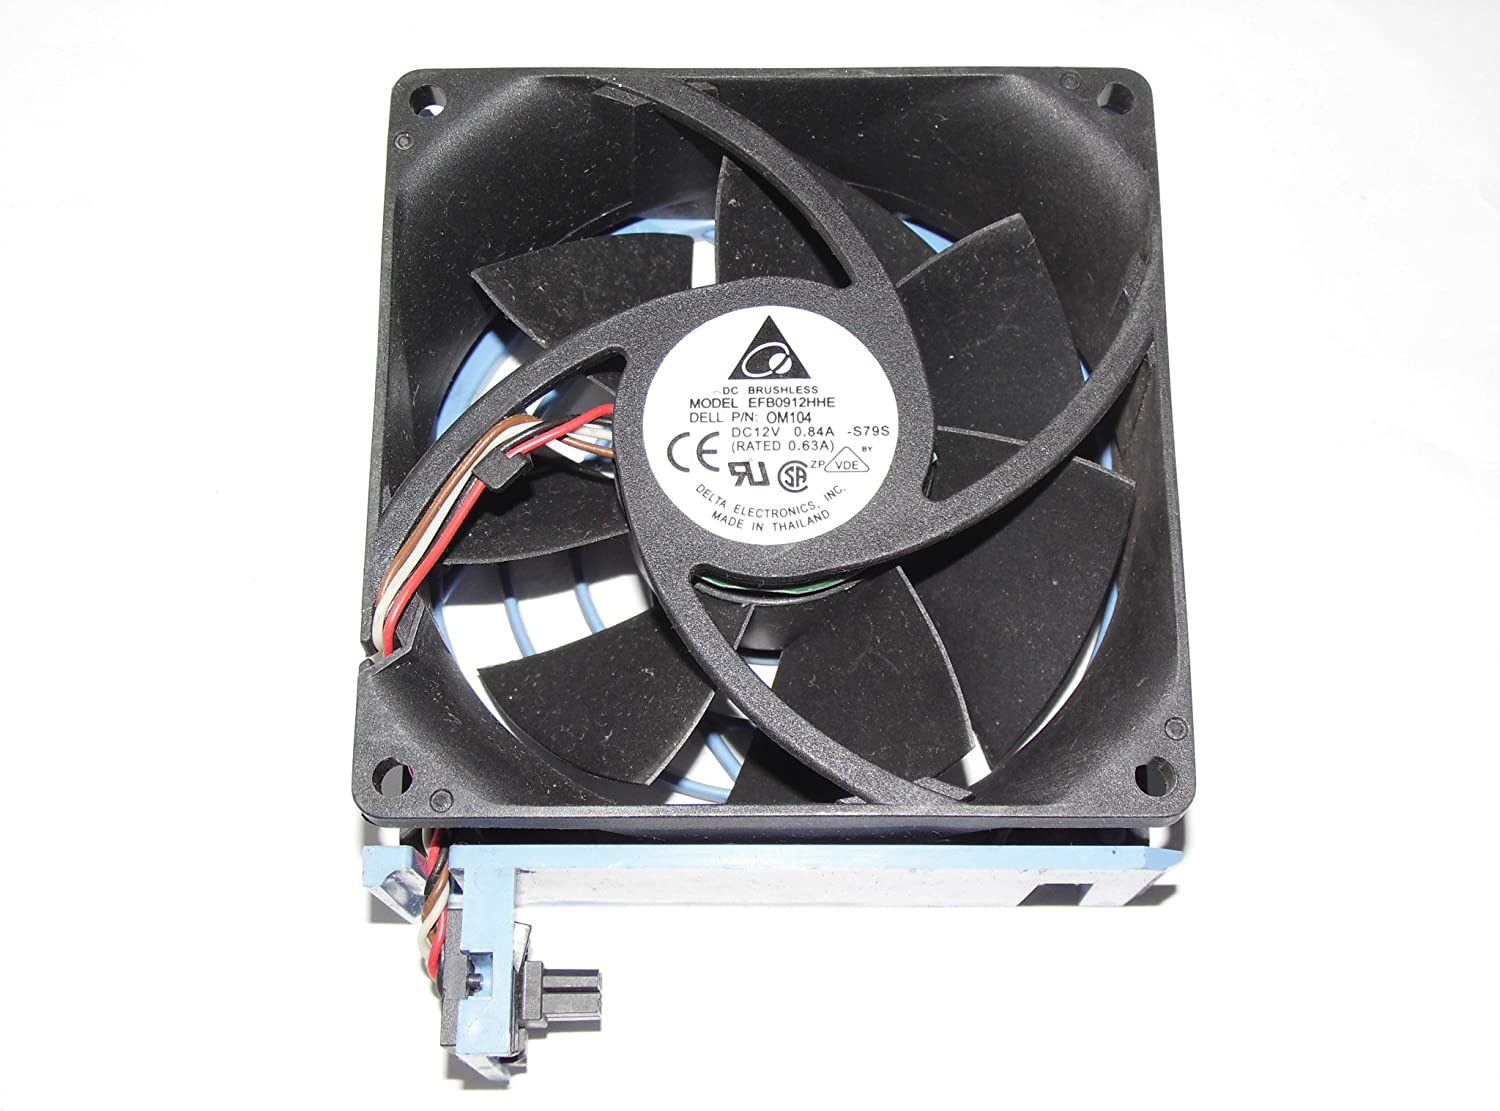 Delta 92mm EFB0912HHE 12V 0.84AWire for DELL PowerEdge 2600 0M104 Case Fan